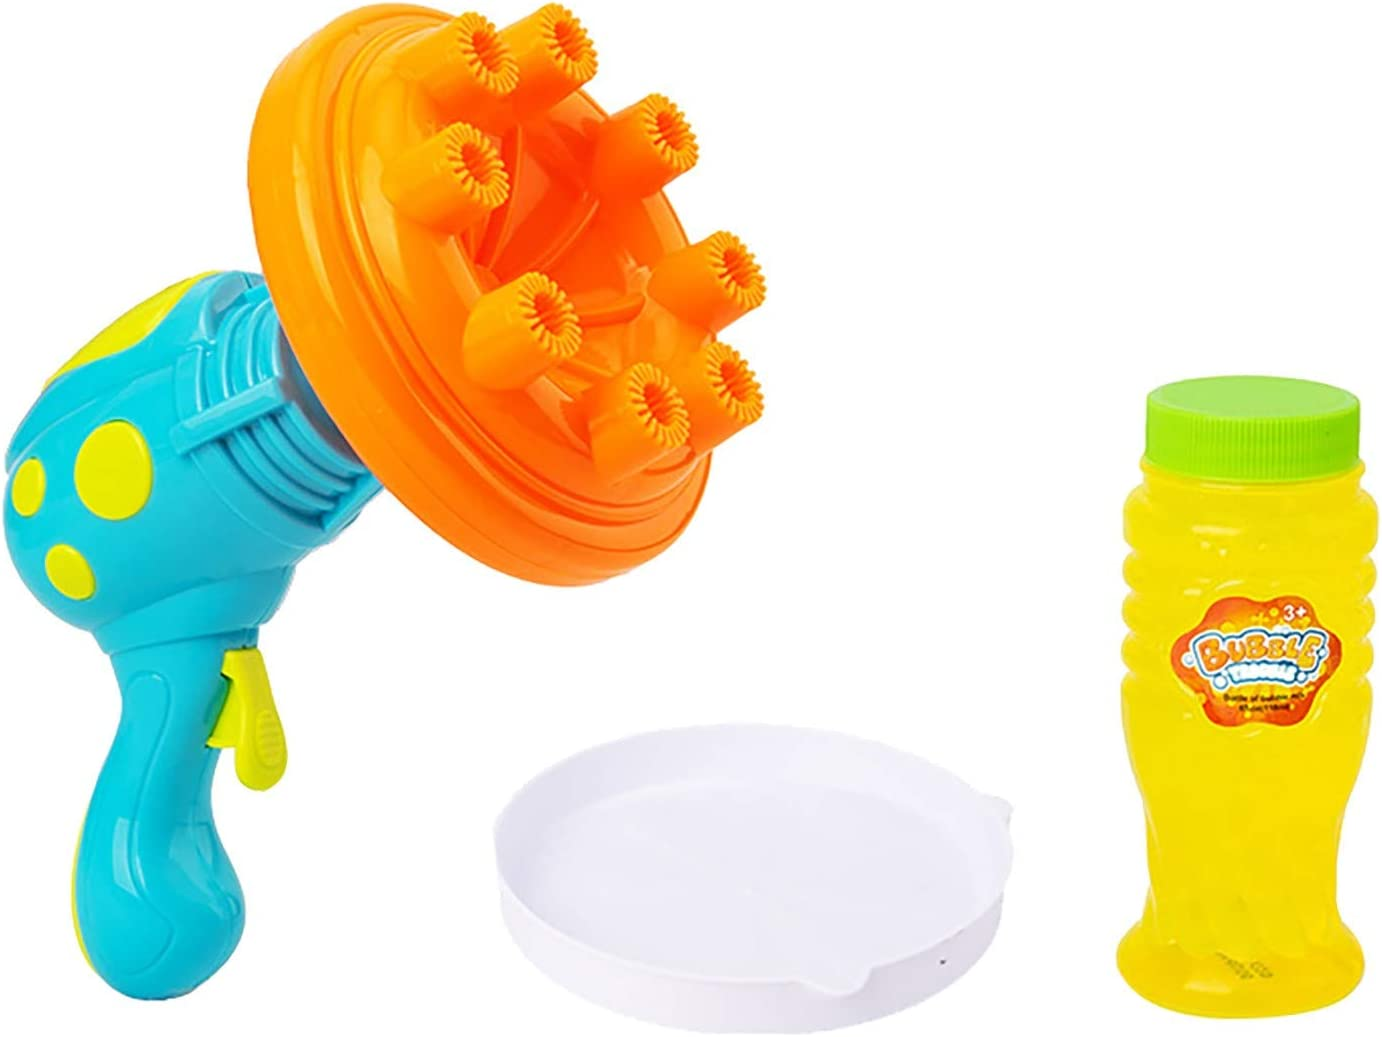 Kids Bubble Maker Machine Bubbl National uniform Lowest price challenge free shipping Battery-Operated 8-Holes